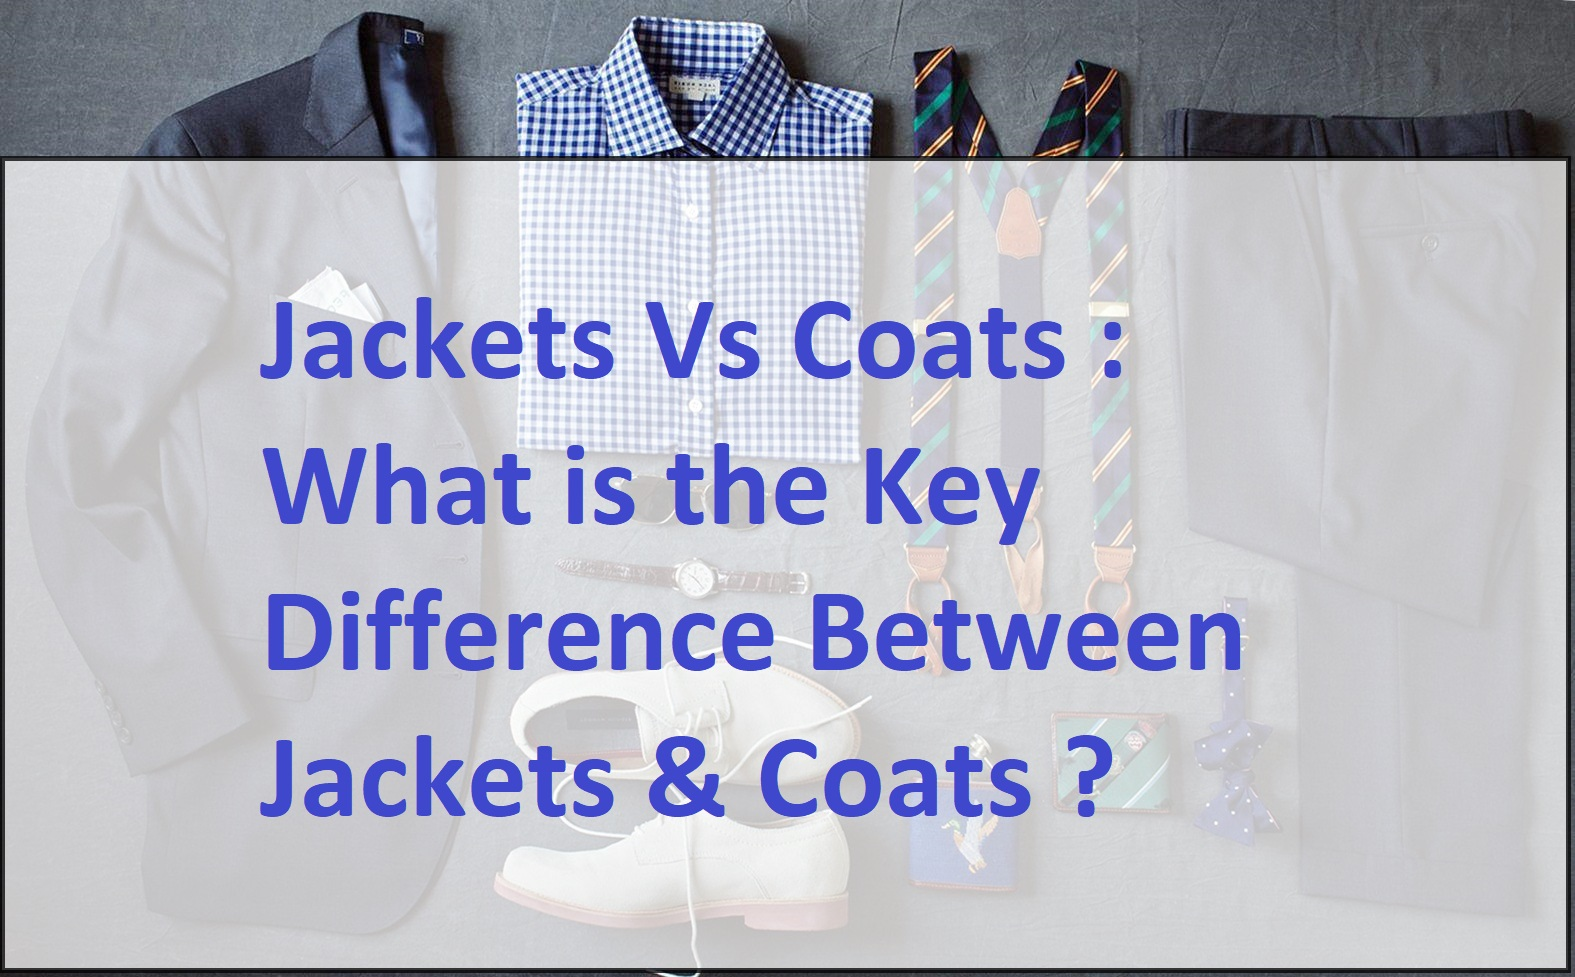 Jackets vs Coats